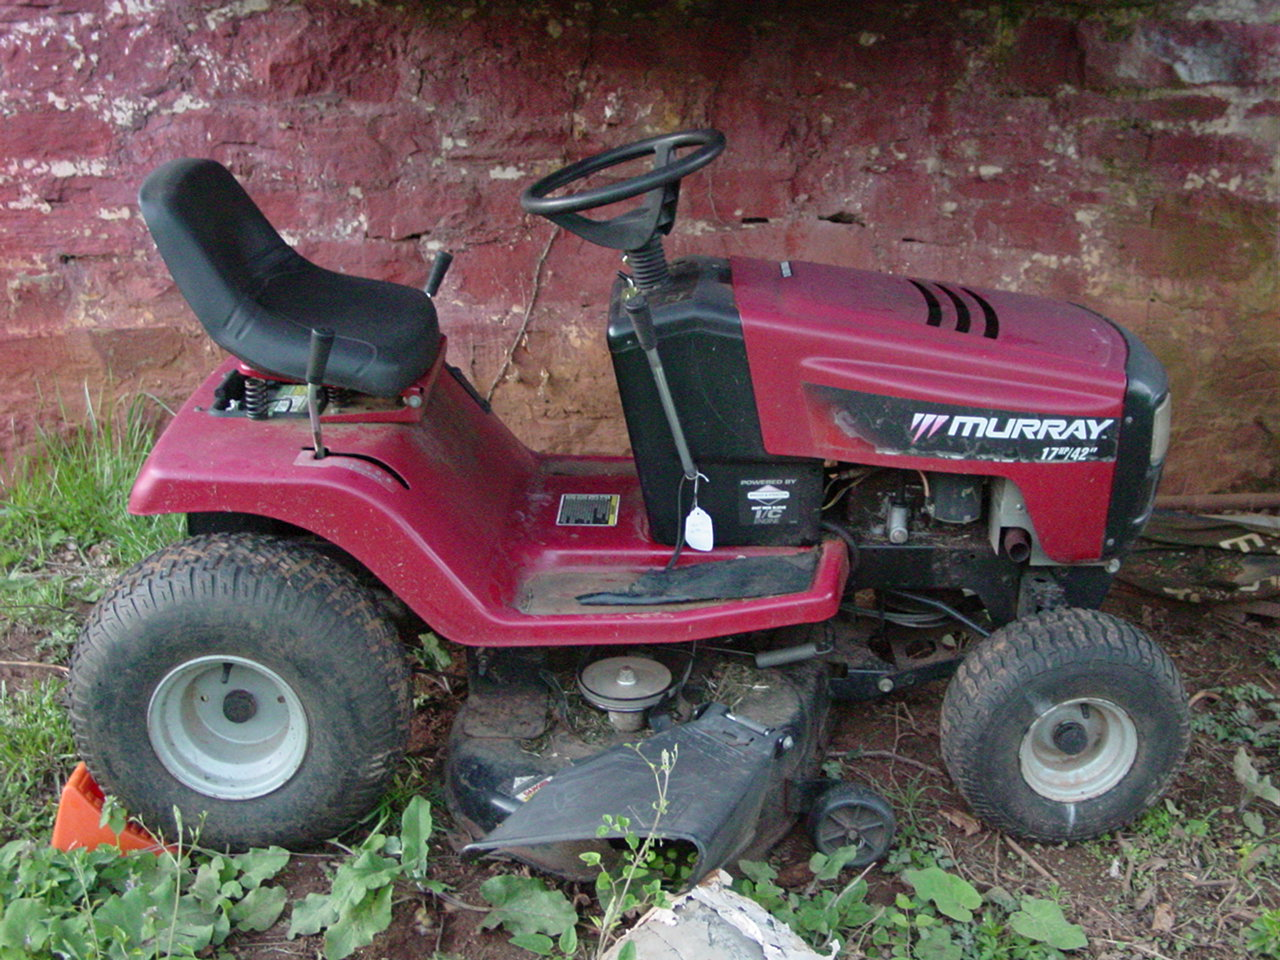 murray riding mower manual wiring library craftsman lawn tractor owner's manual Craftsman Riding Lawn Mower Manual